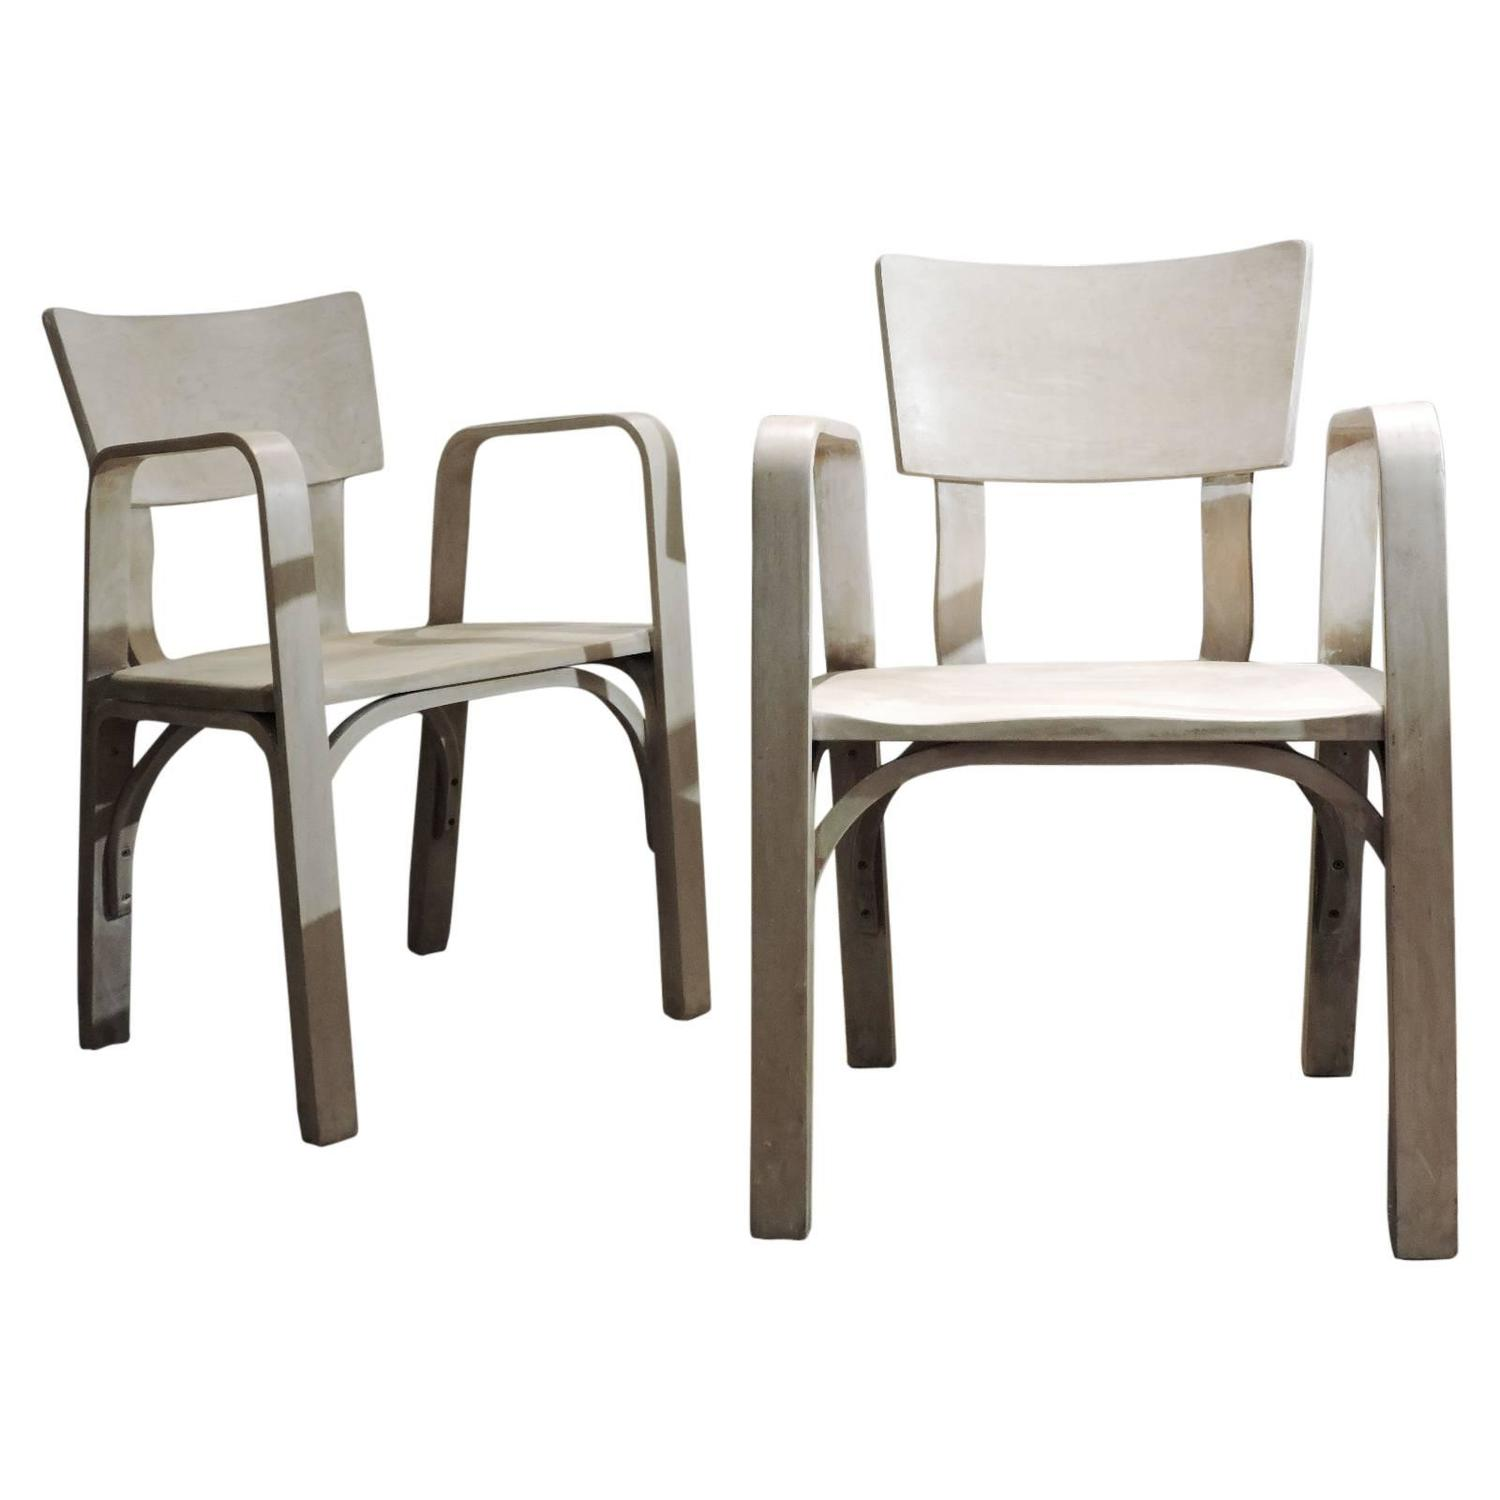 Thonet bent plywood armchairs for sale at 1stdibs